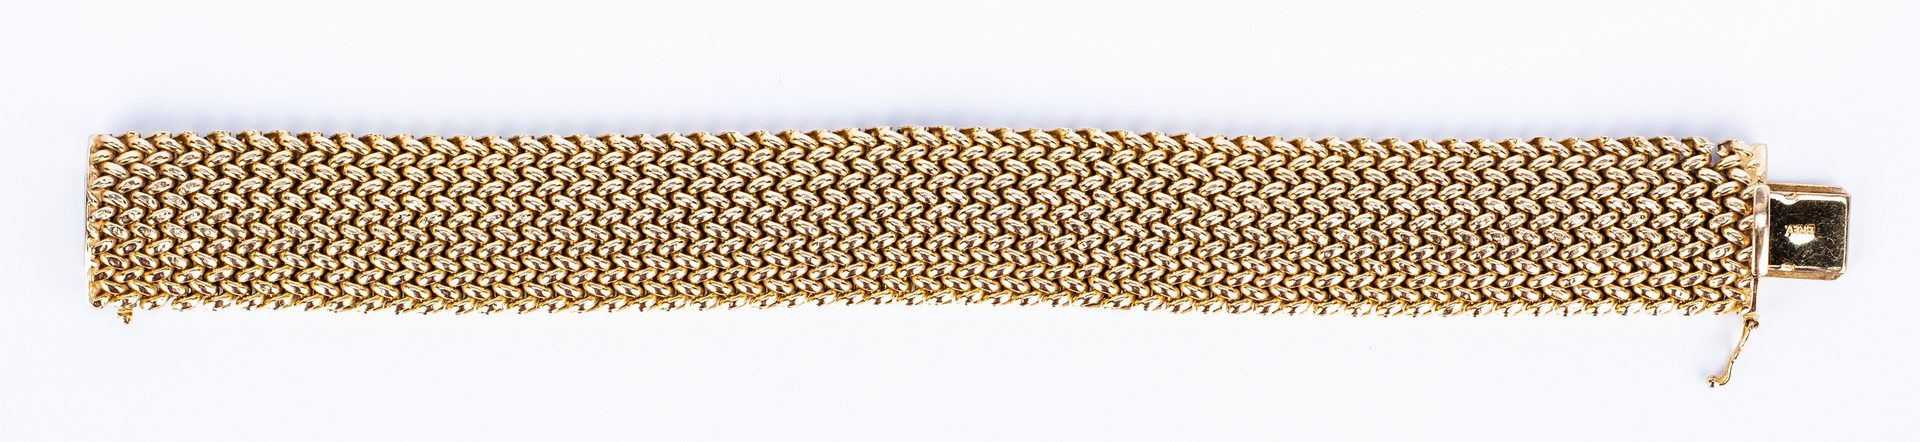 Lot 442: Italian 14K Wide Woven Bracelet, 38.5 grams